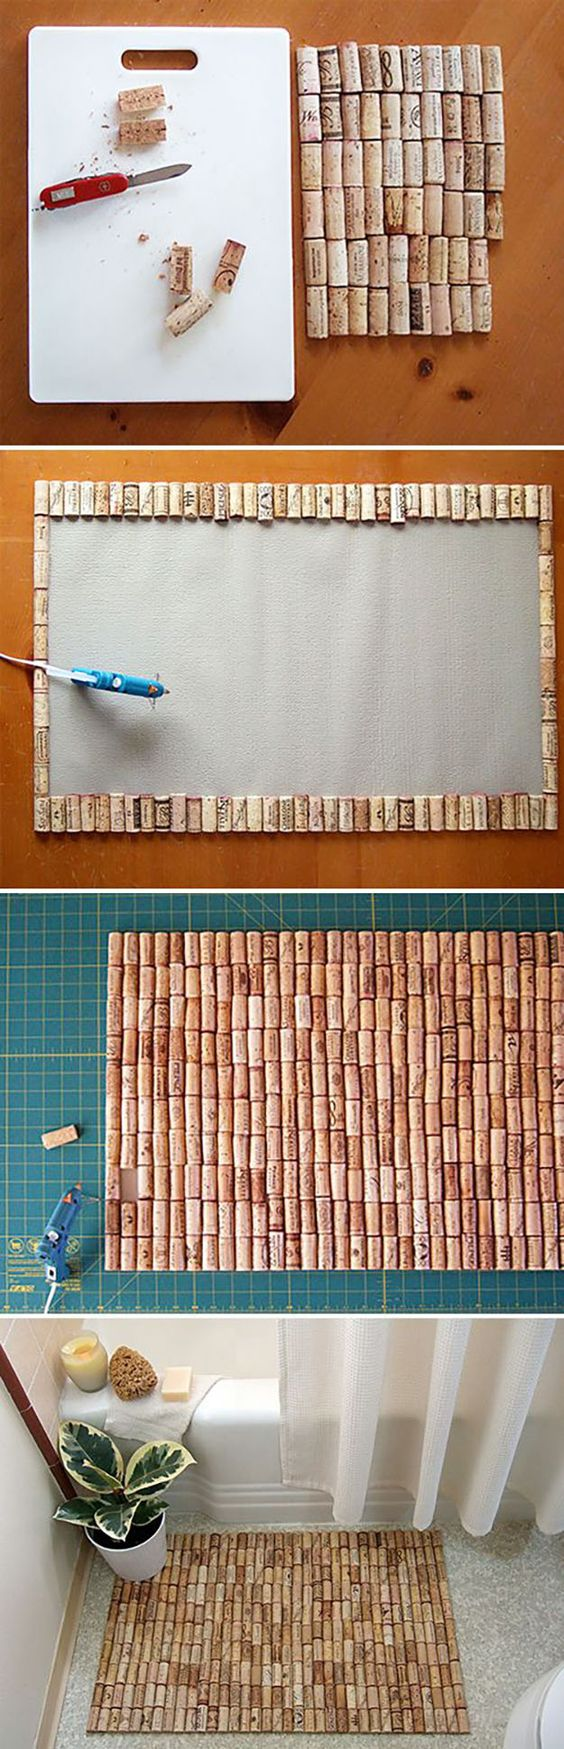 Easy Wine Cork Craft Ideas for the Home - DIY Wine Cork Bathmat - DIY Projects & Crafts by DIY JOY at http://diyjoy.com/diy-wine-cork-crafts-craft-ideas: